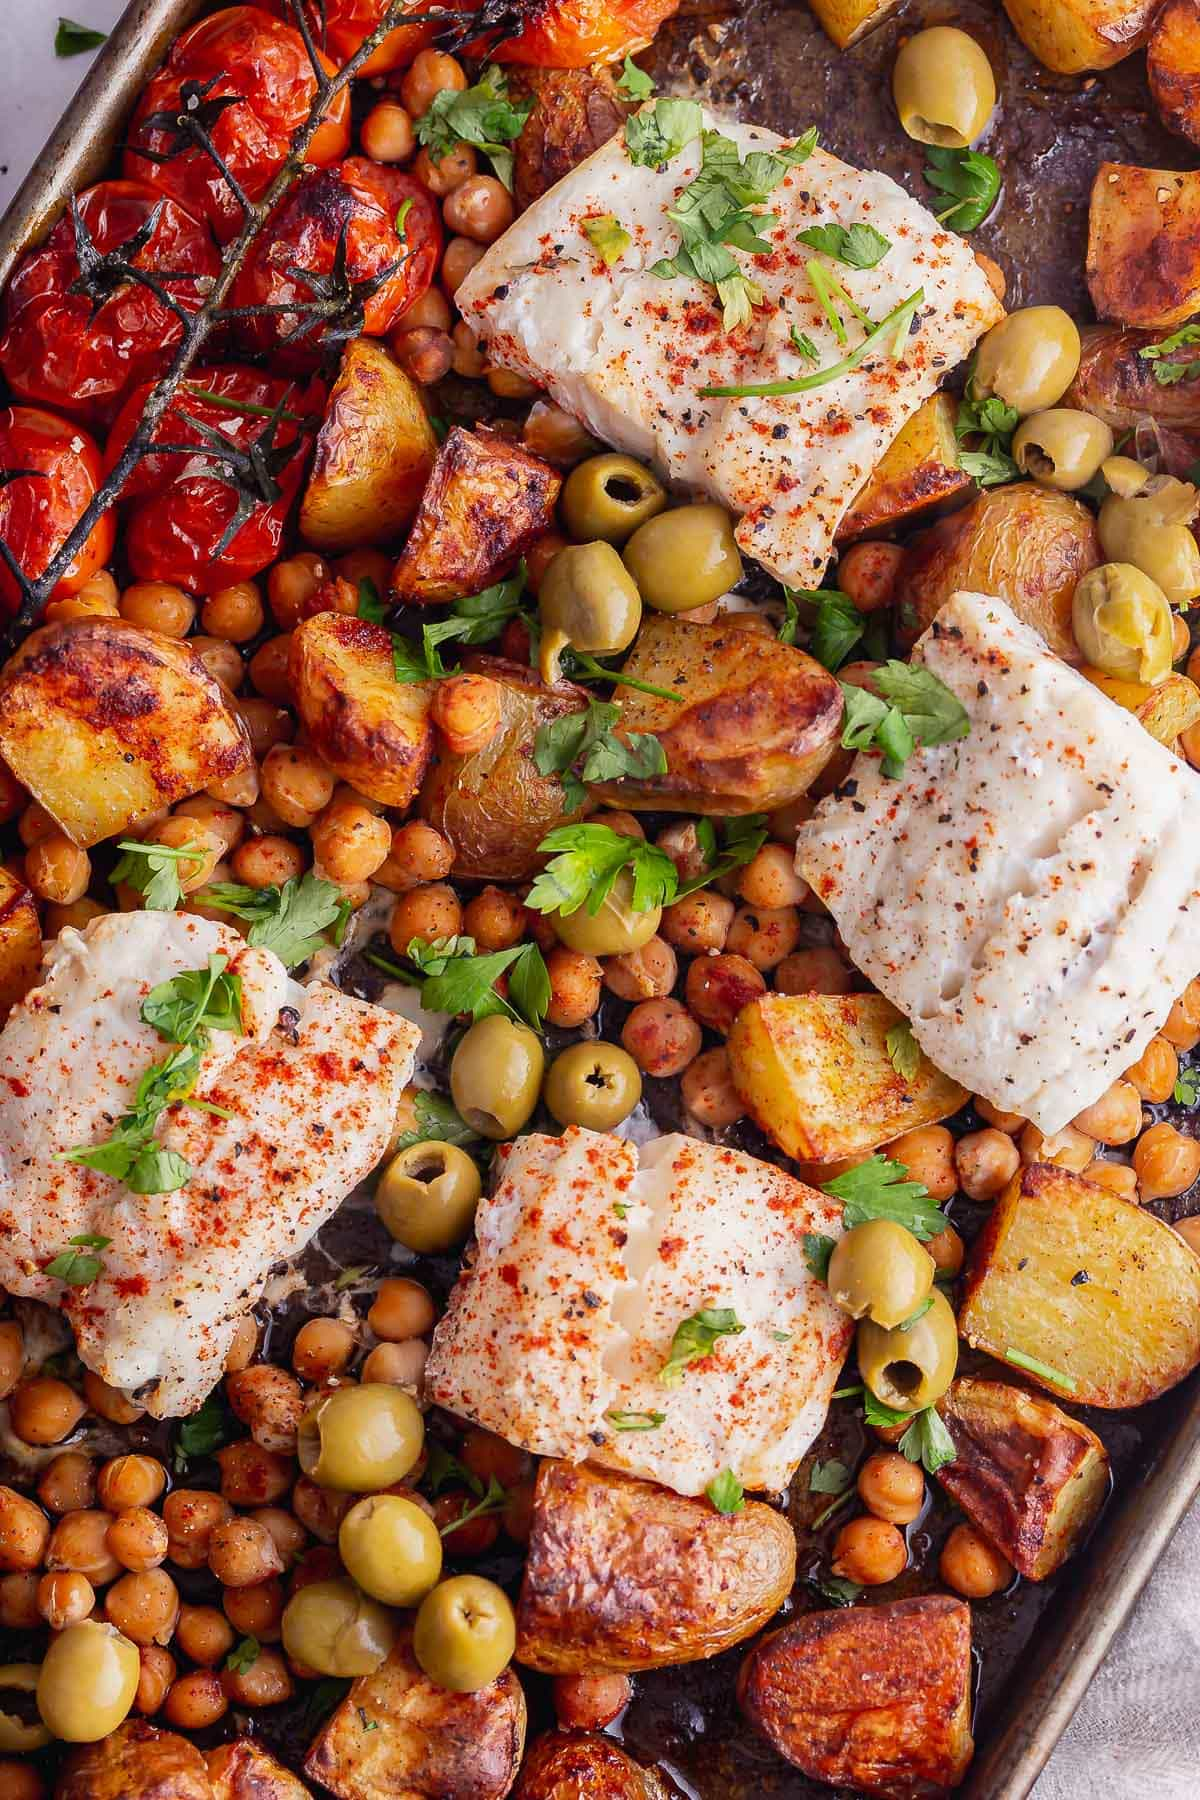 Overhead shot of cod pieces on top of potatoes and chickpeas